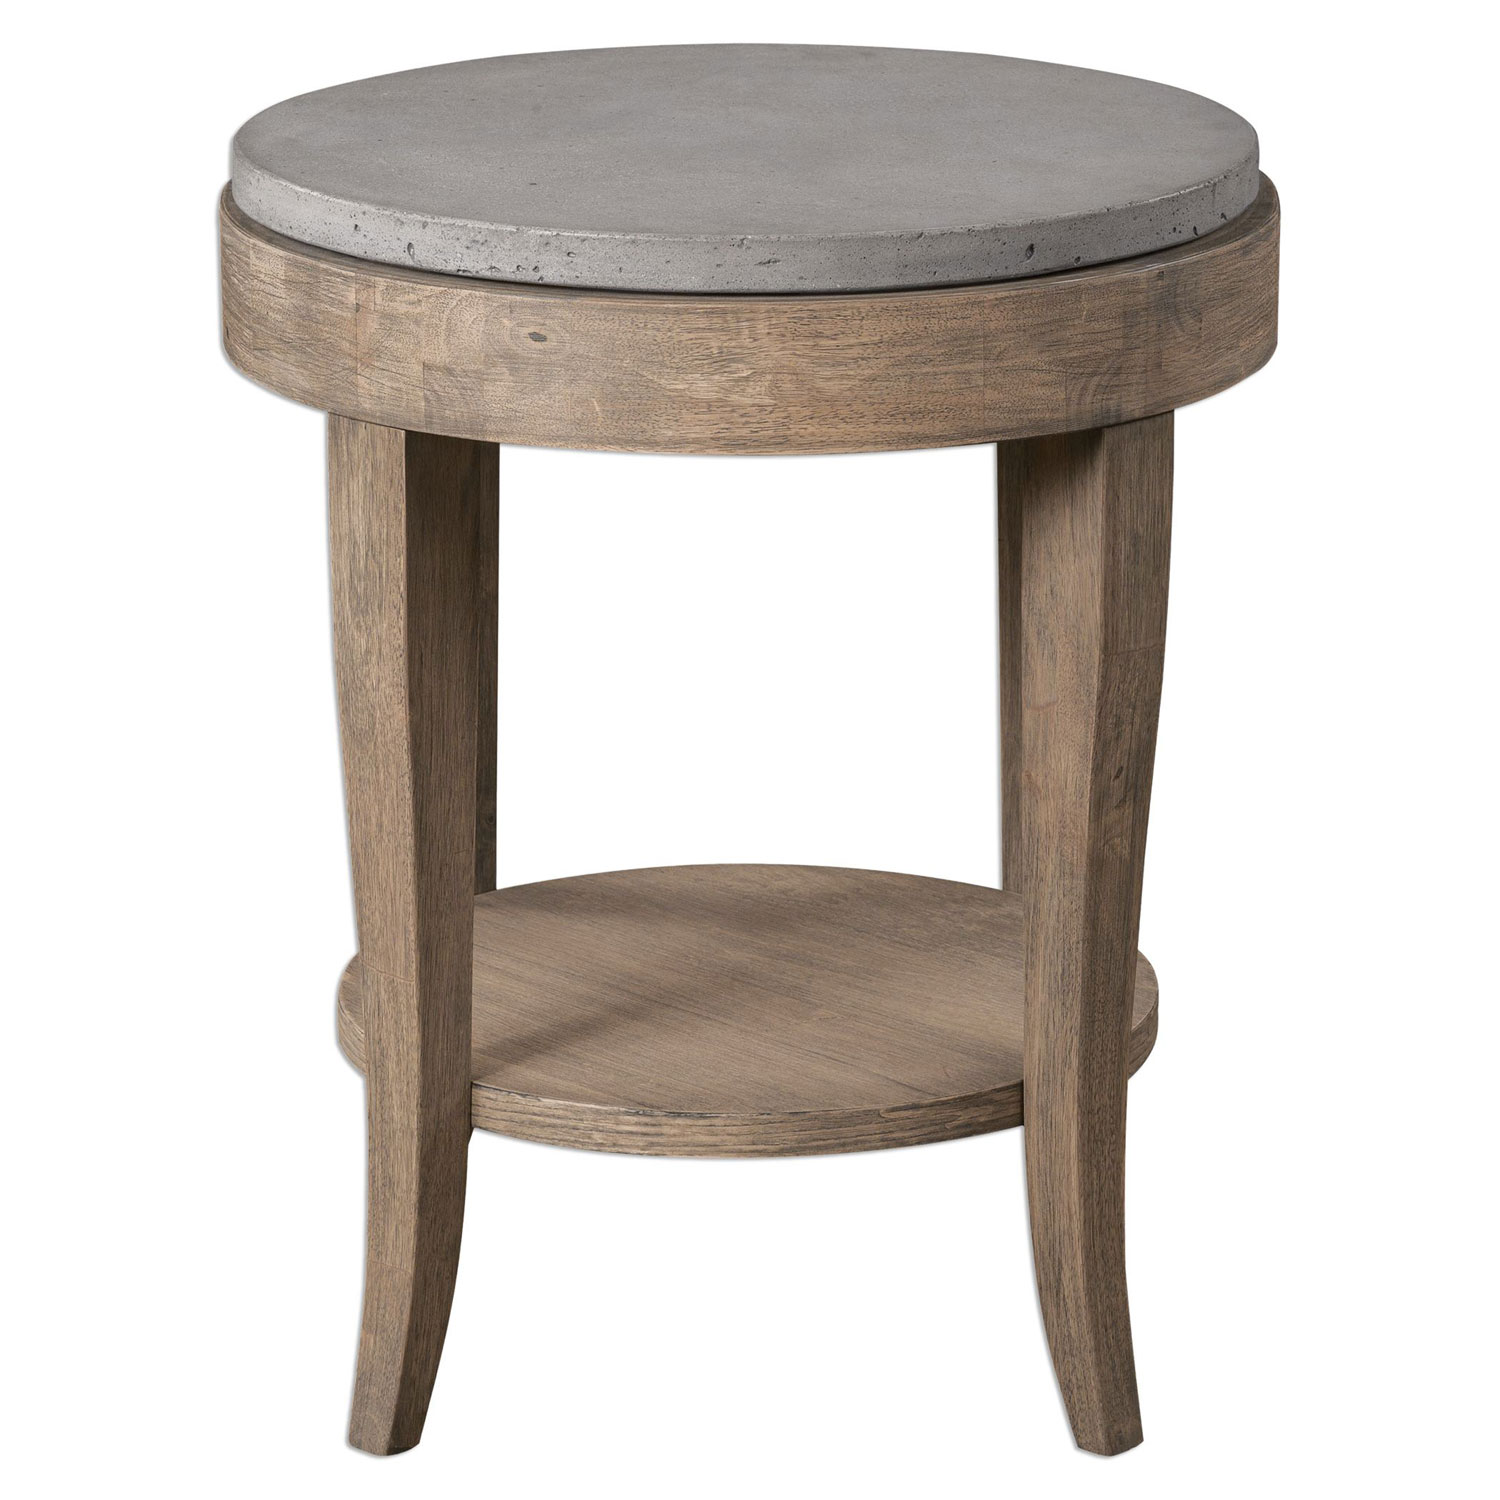 uttermost deka brown round accent table grey hover zoom nautical bar lights drum throne base triangle nightstand metal coffee laminate door strip applique runner chinese bedside